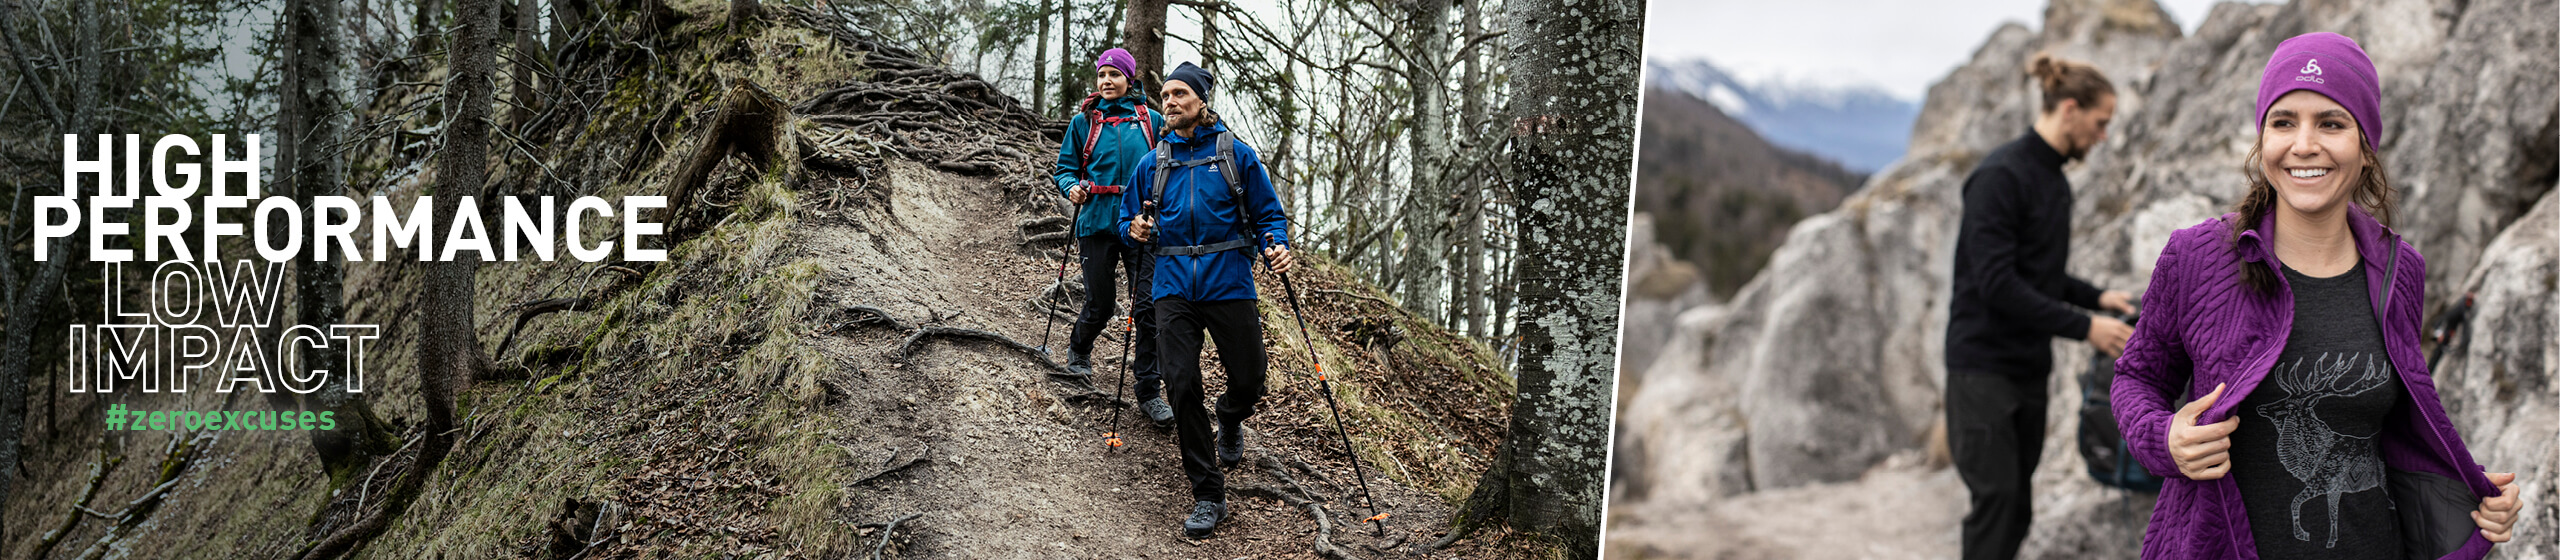 ODLO Hiking-Trekking Collection Automne Hiver 2020